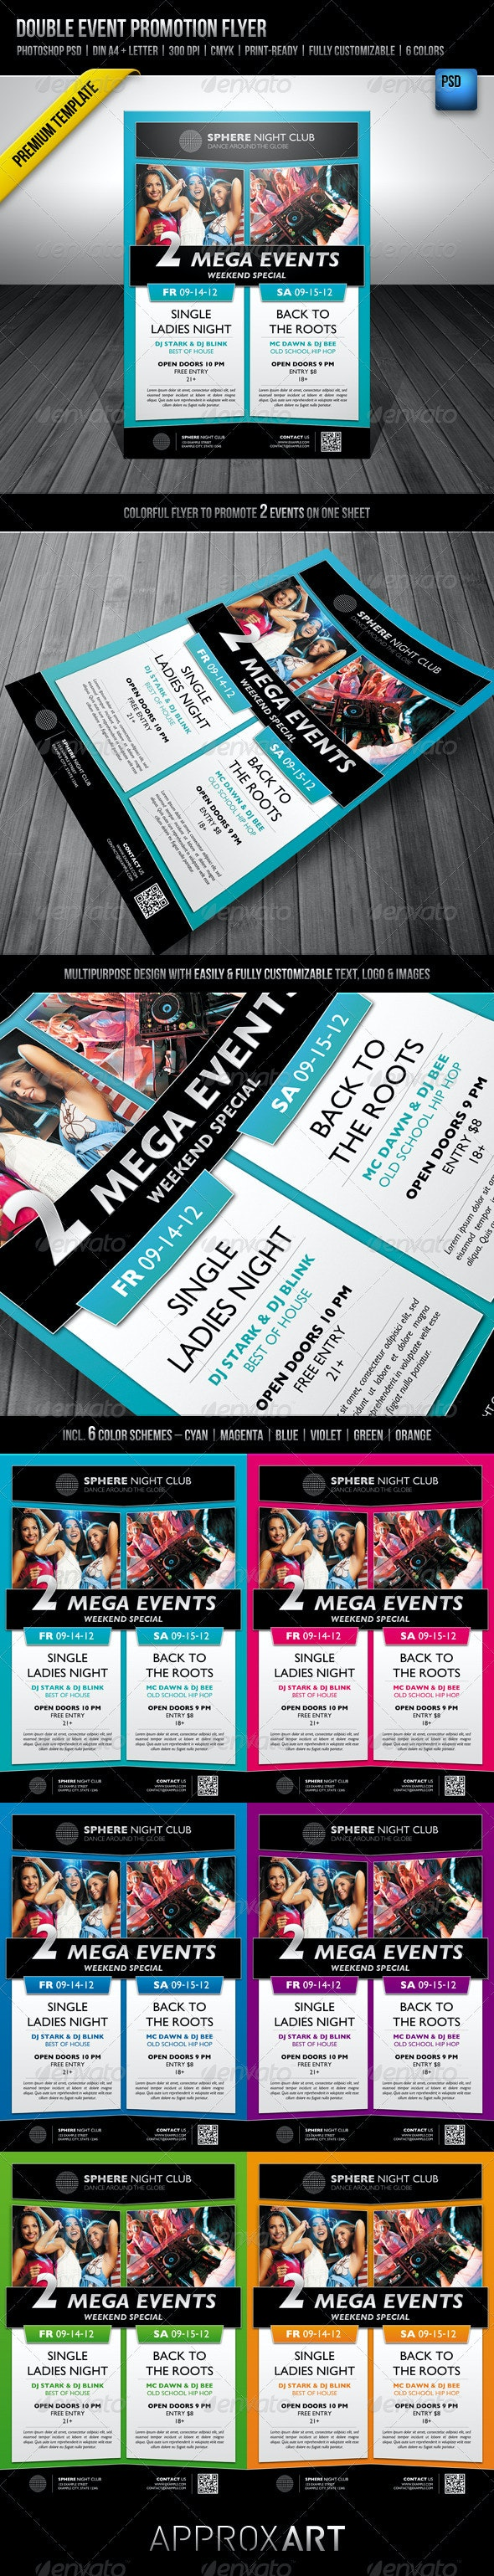 Double Event Promotion Flyer - Clubs & Parties Events